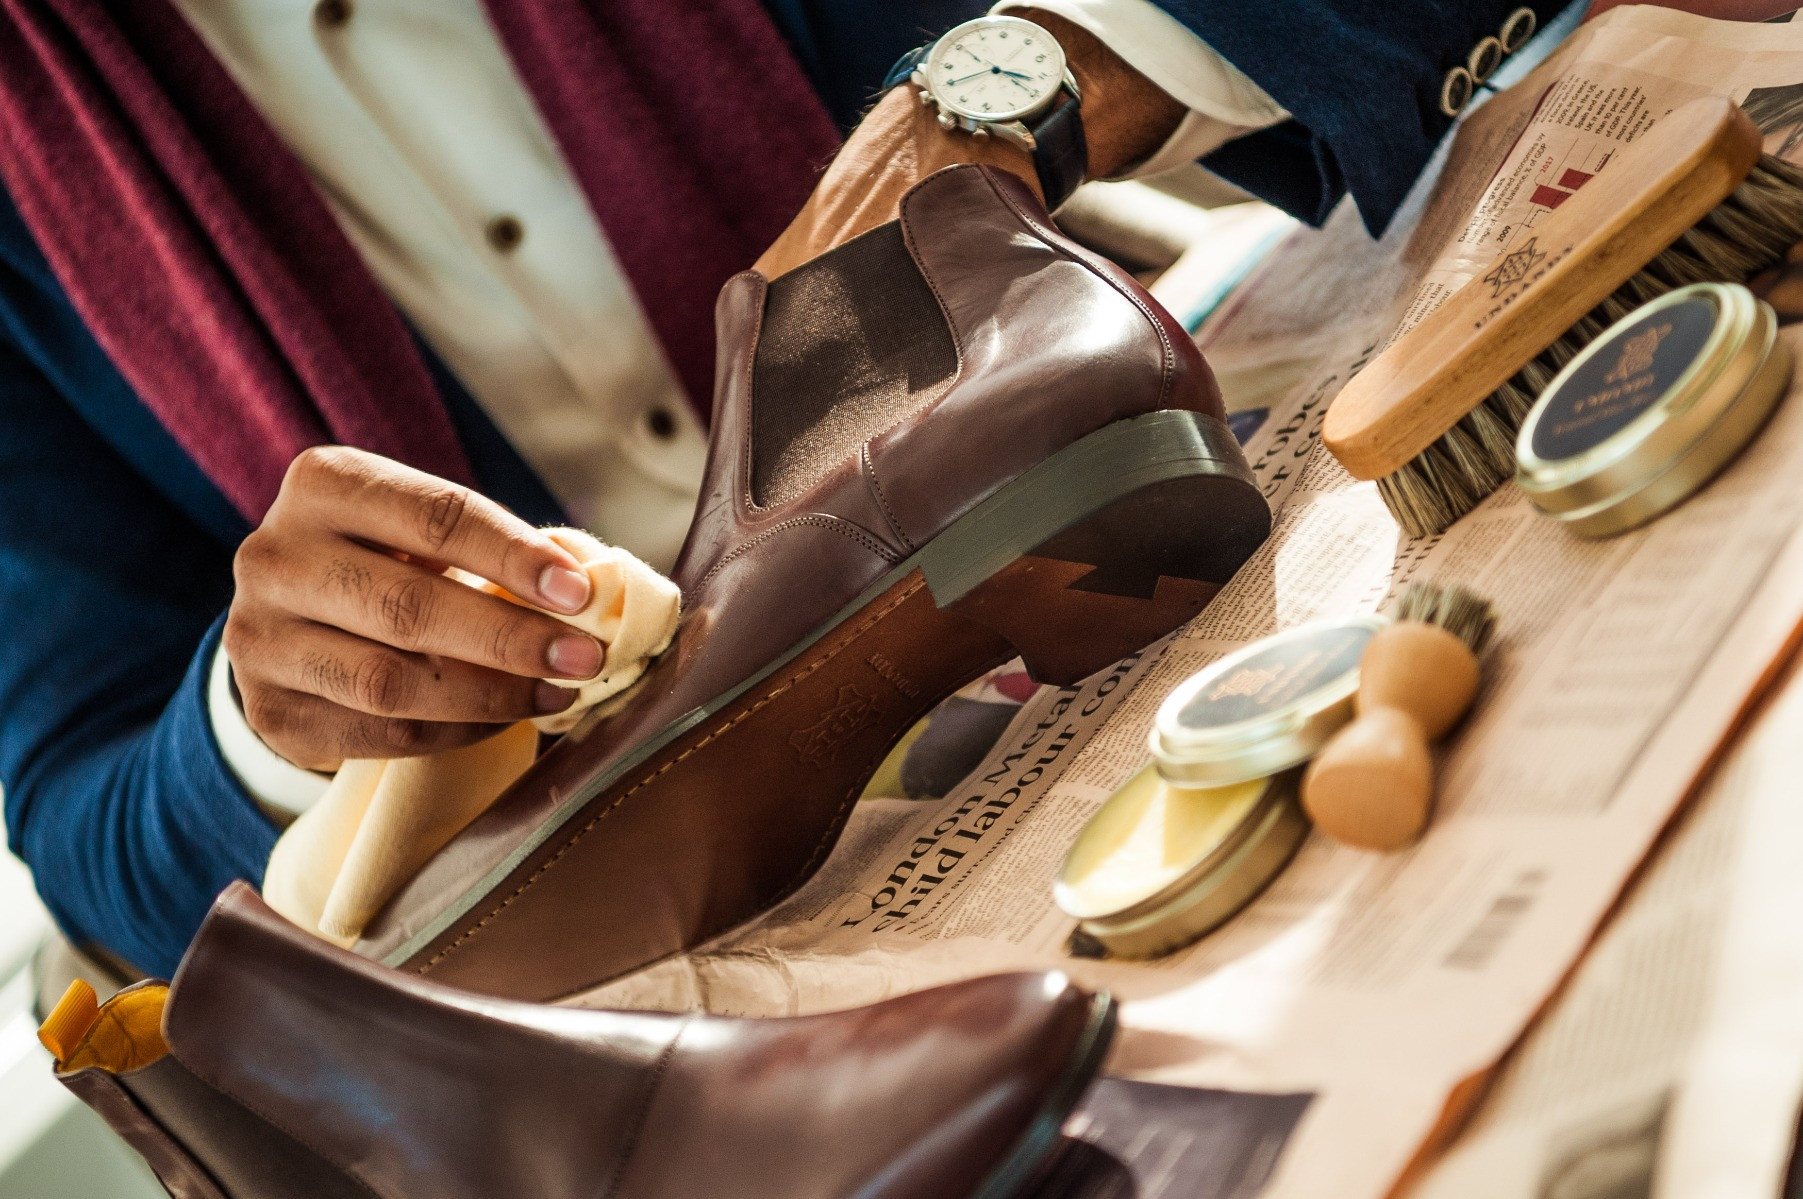 Leather boots; Shoe care kit; Wax and polish